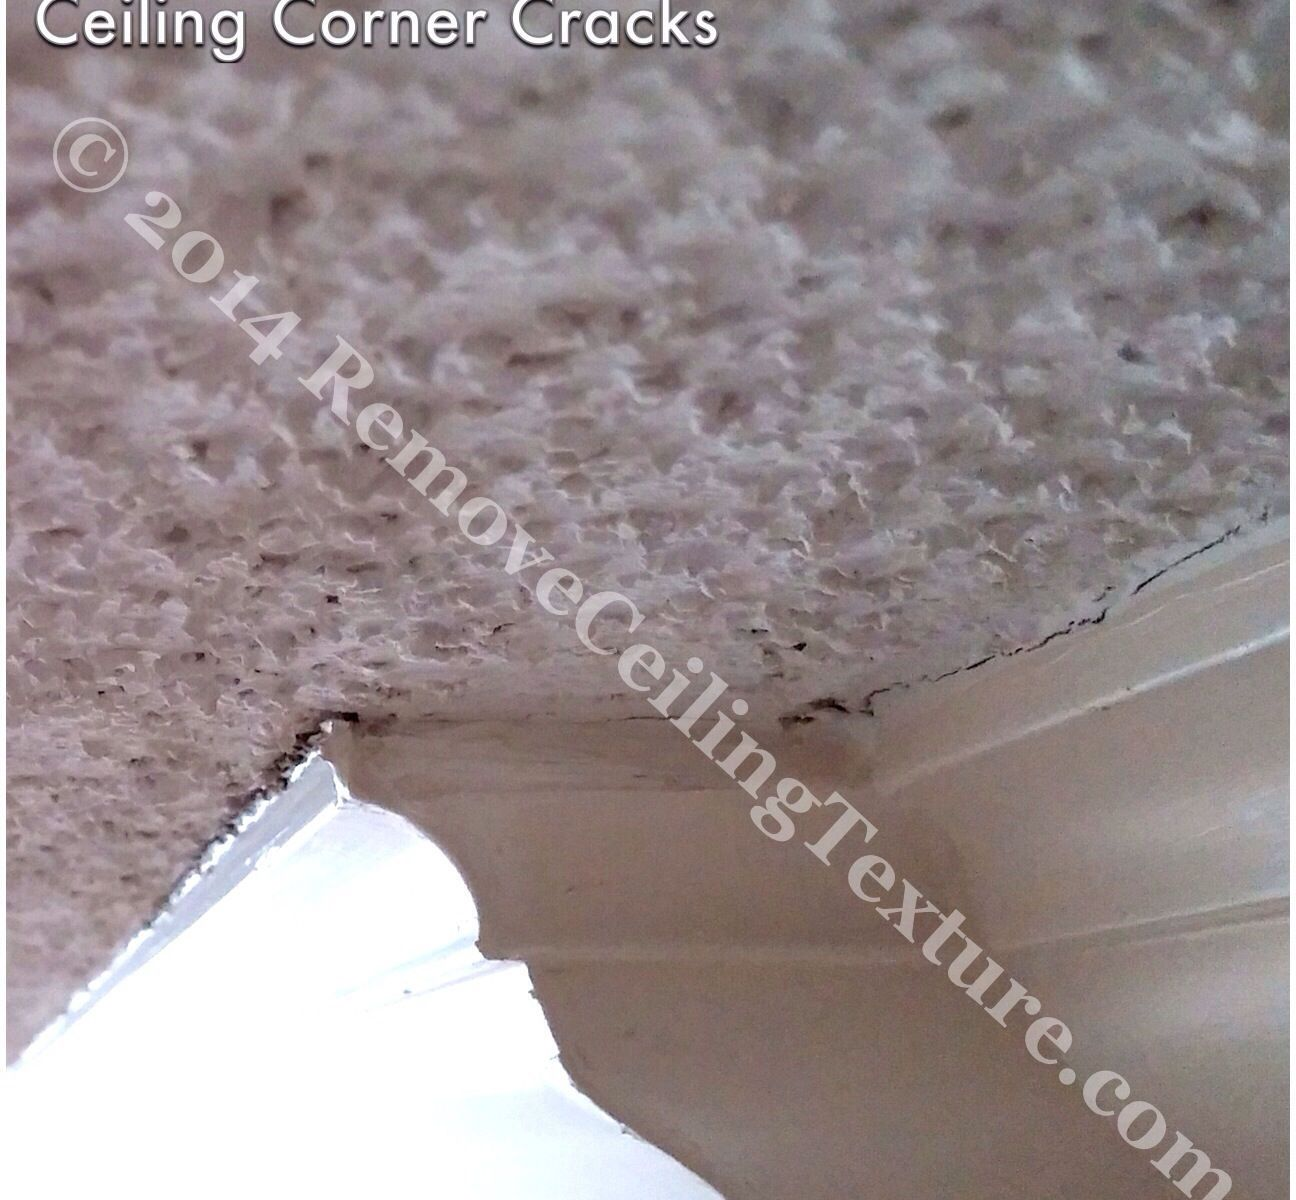 This Vancouver condo had ceiling corner cracks in the texture